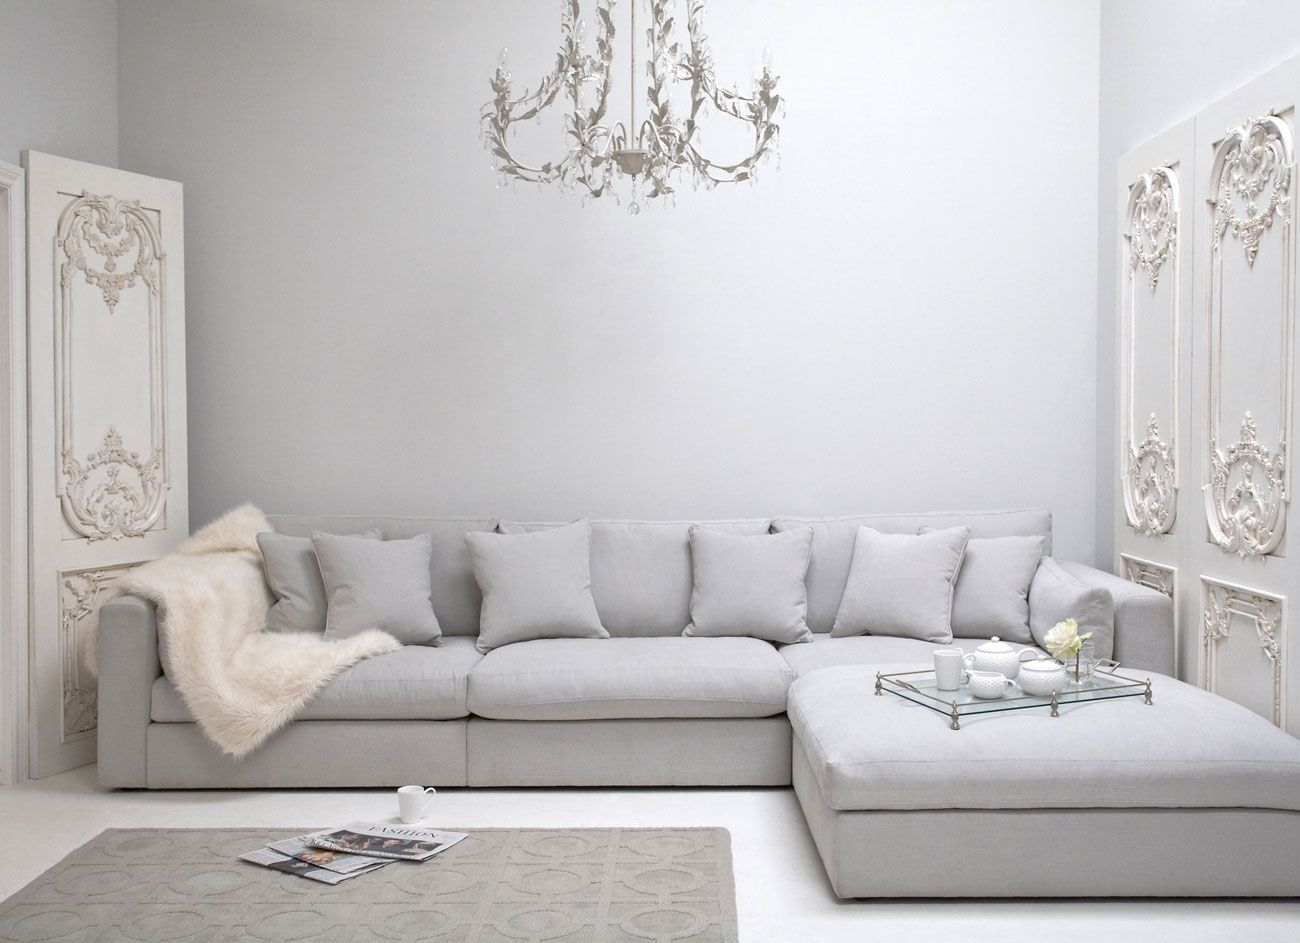 Best 20 White Corner Sofas ideas on Pinterest Grey corner sofa